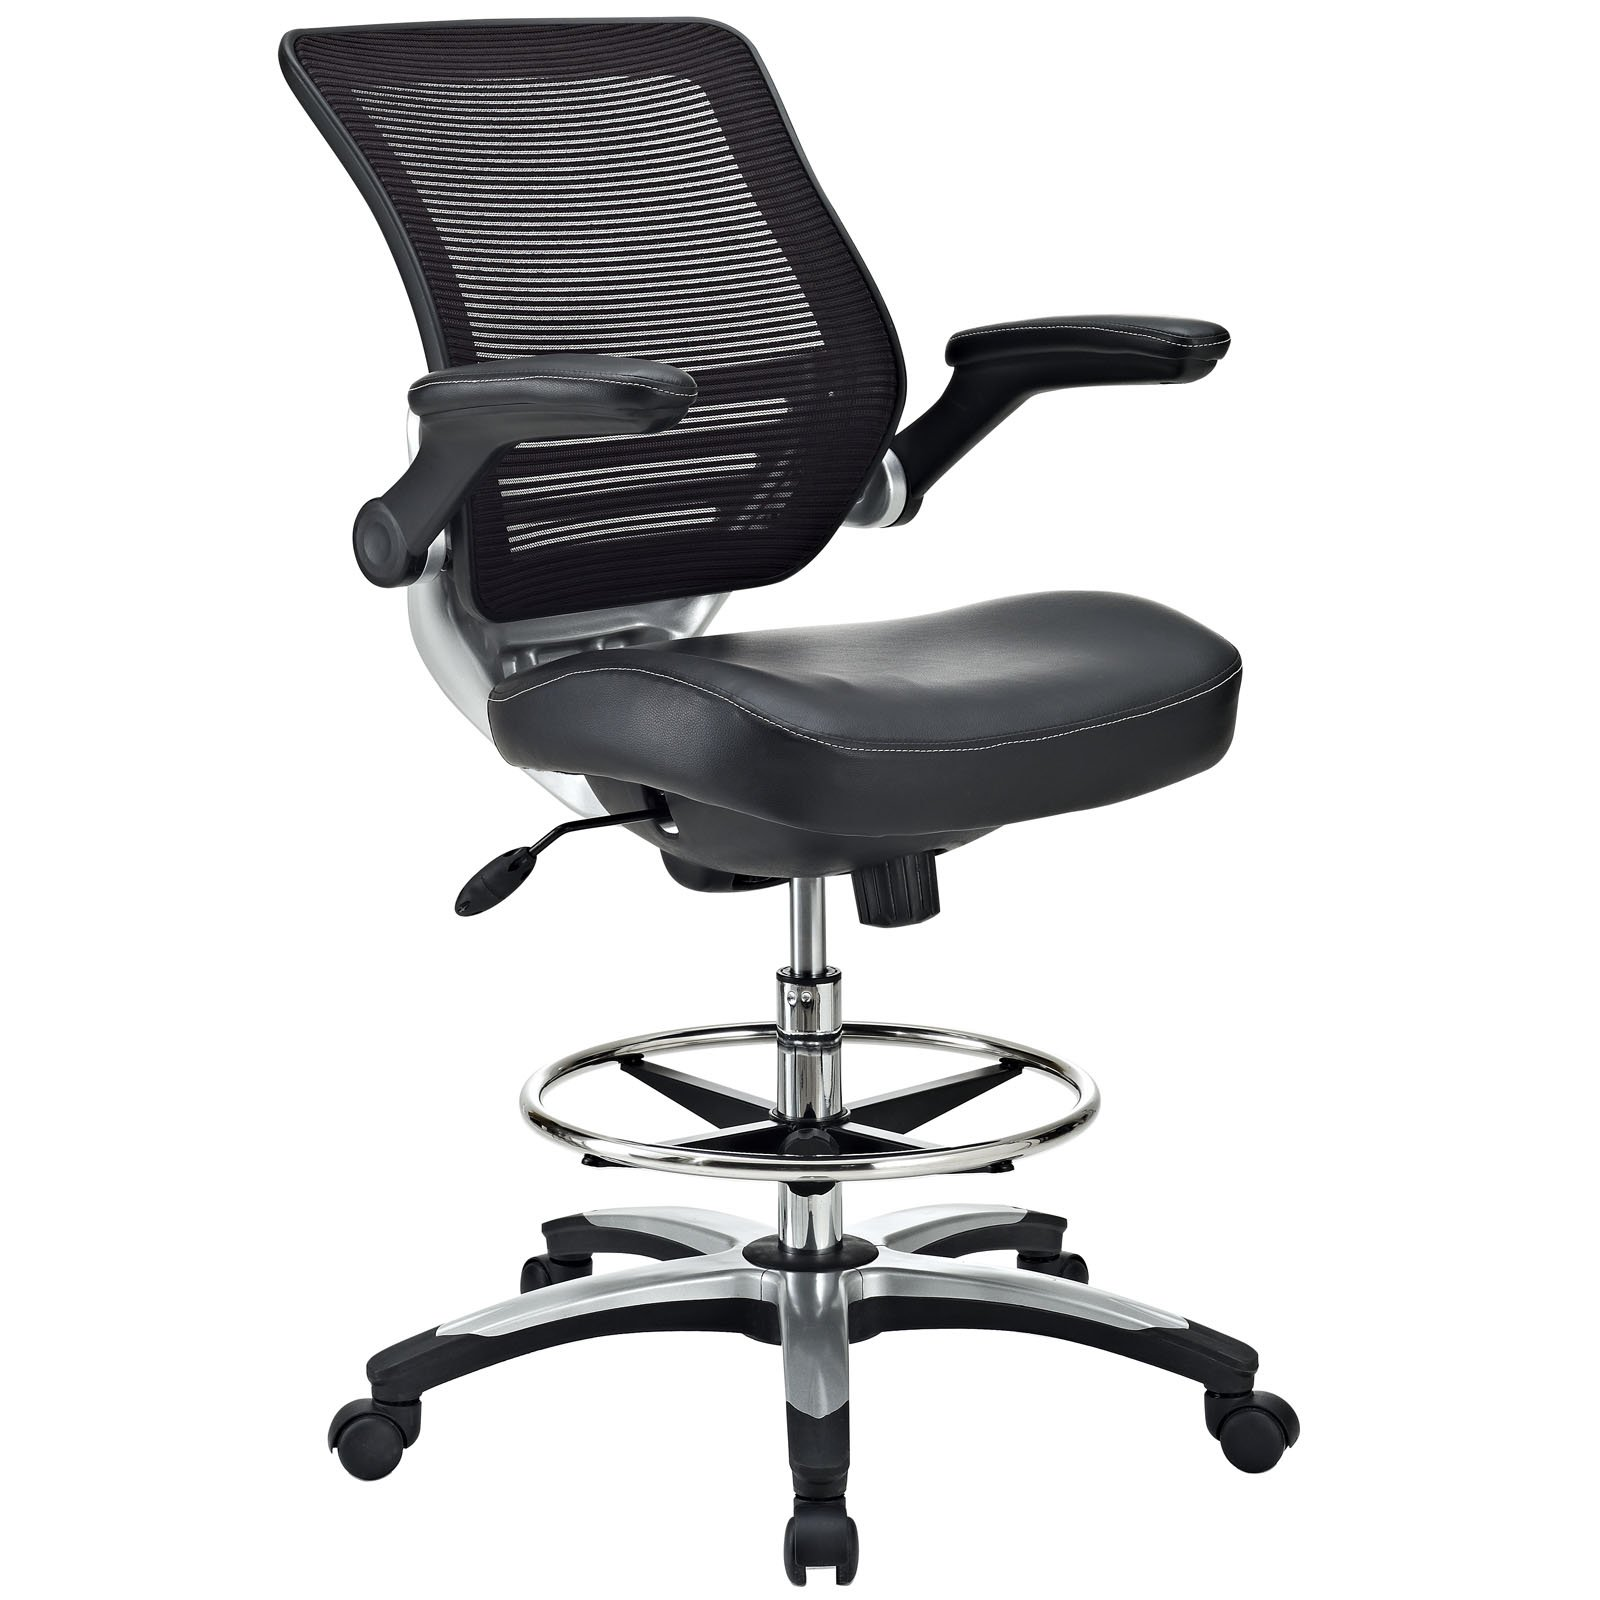 Modway Edge Drafting Chair In Black Vinyl - Reception Desk Chair - Tall Office Chair For Adjustable Standing Desks - Flip-Up Arm Drafting Table Chair by Modway